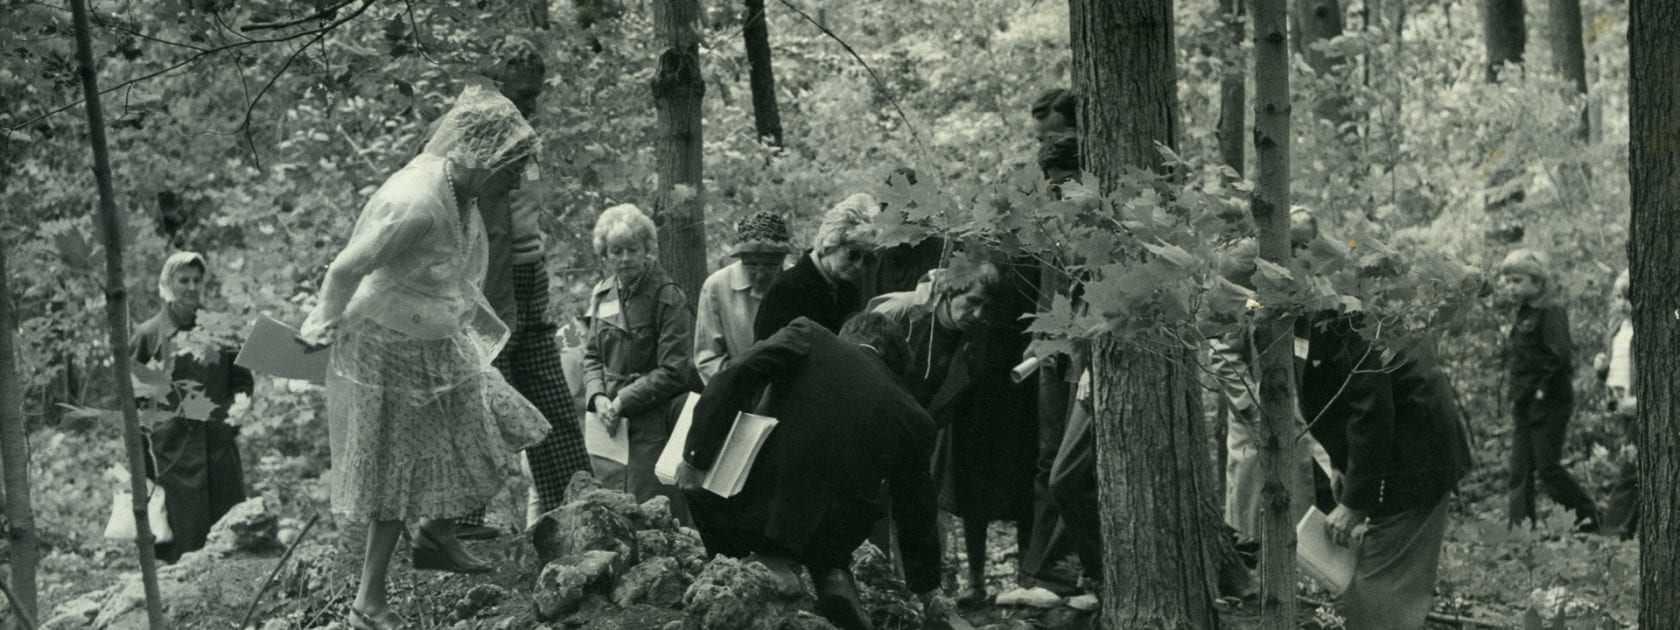 A group of people gather and look at the stump of a tree in the woods. One woman on the left is pulling up her skirt as she walks nearer to the group.